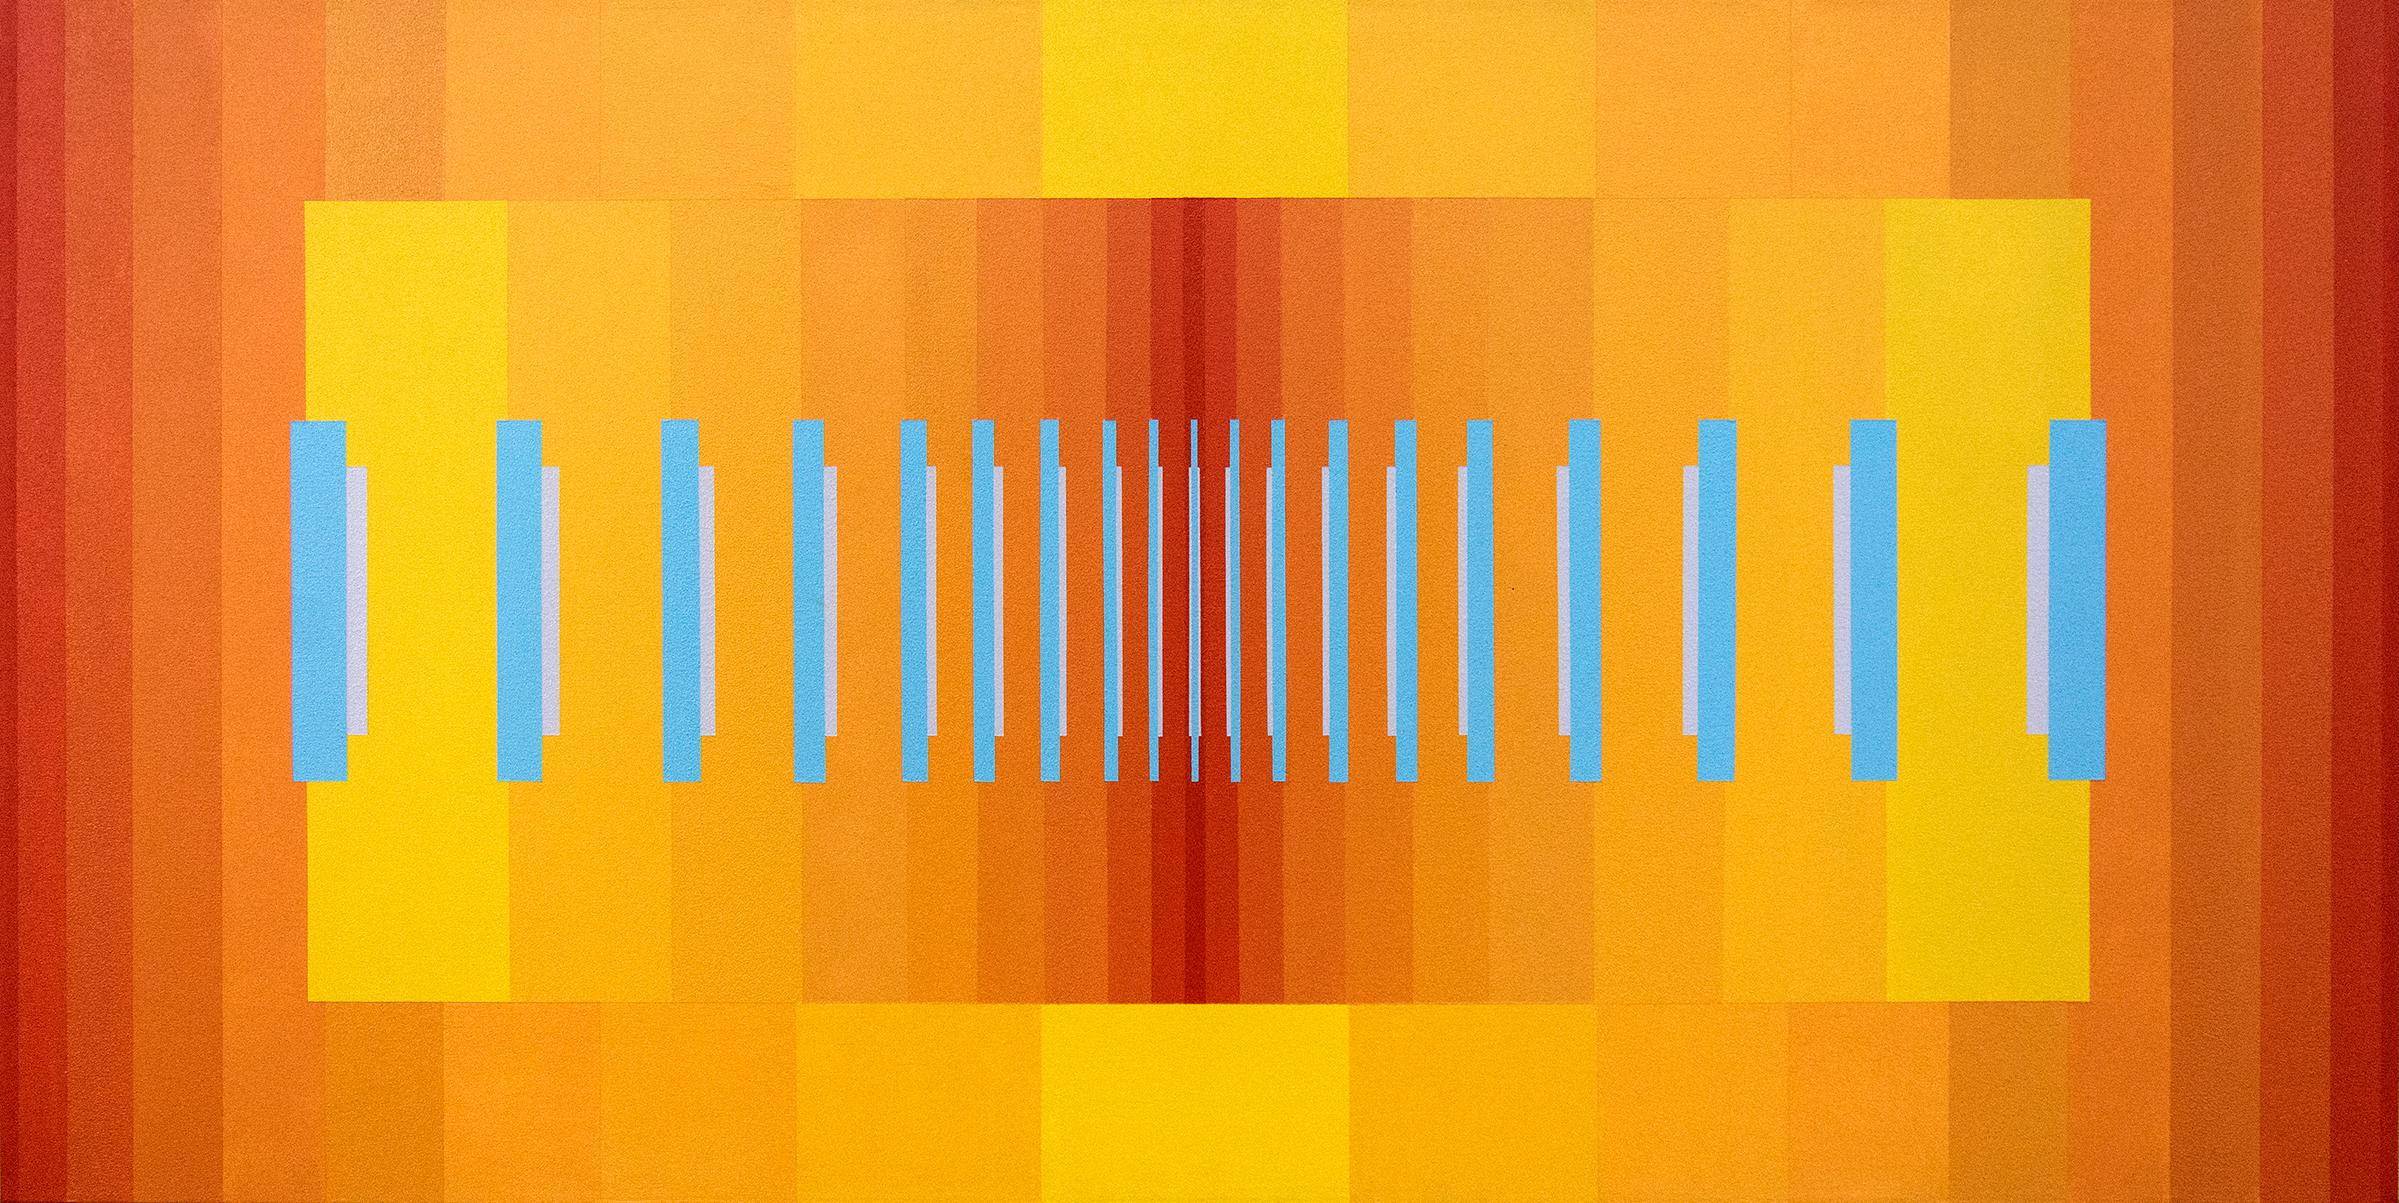 Chorale No 4 - bright, geometric abstraction, modernist acrylic on canvas